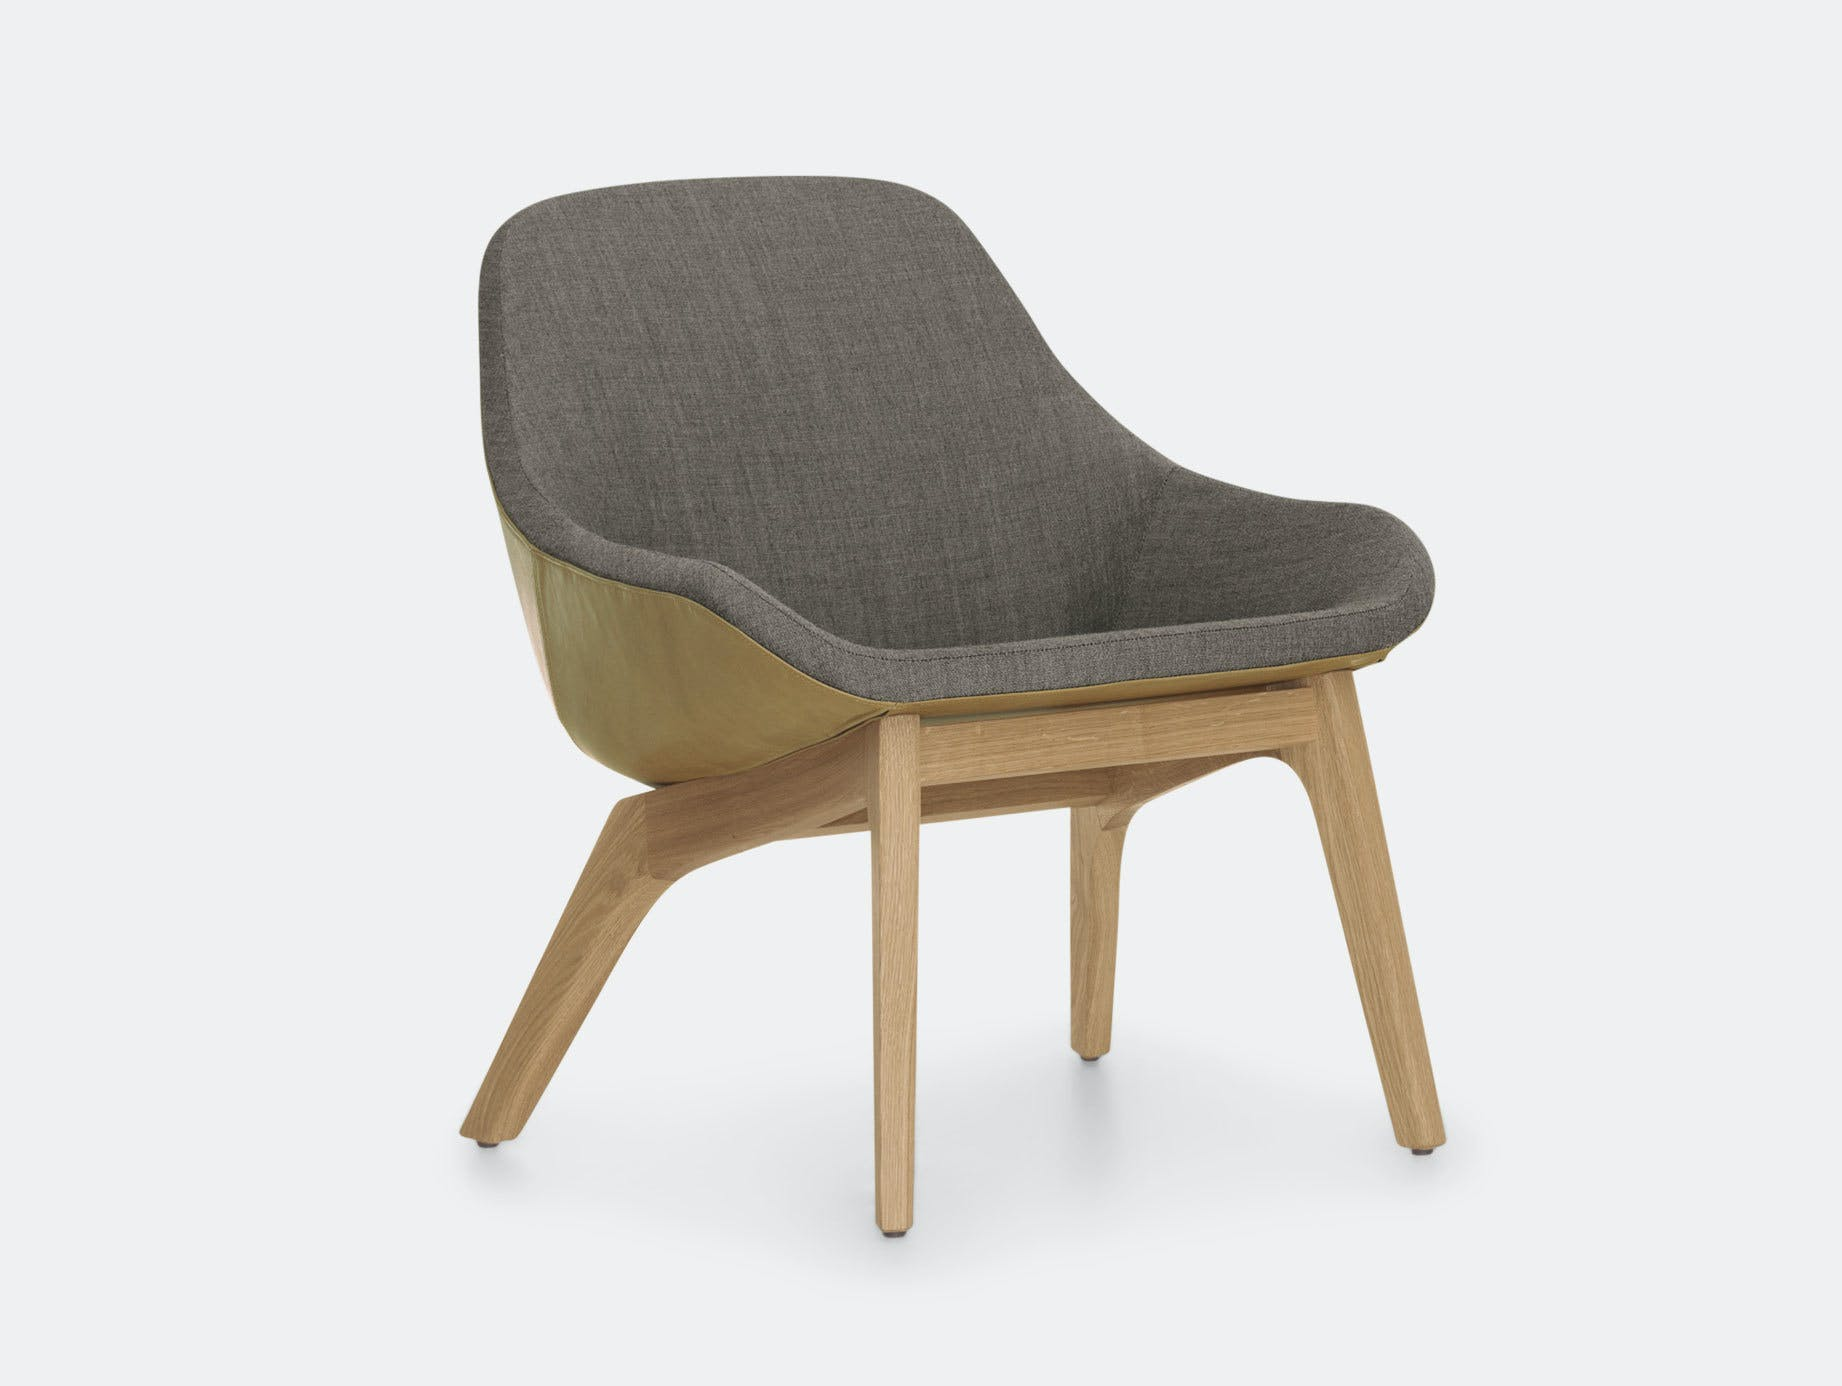 Morph Lounge Chair image